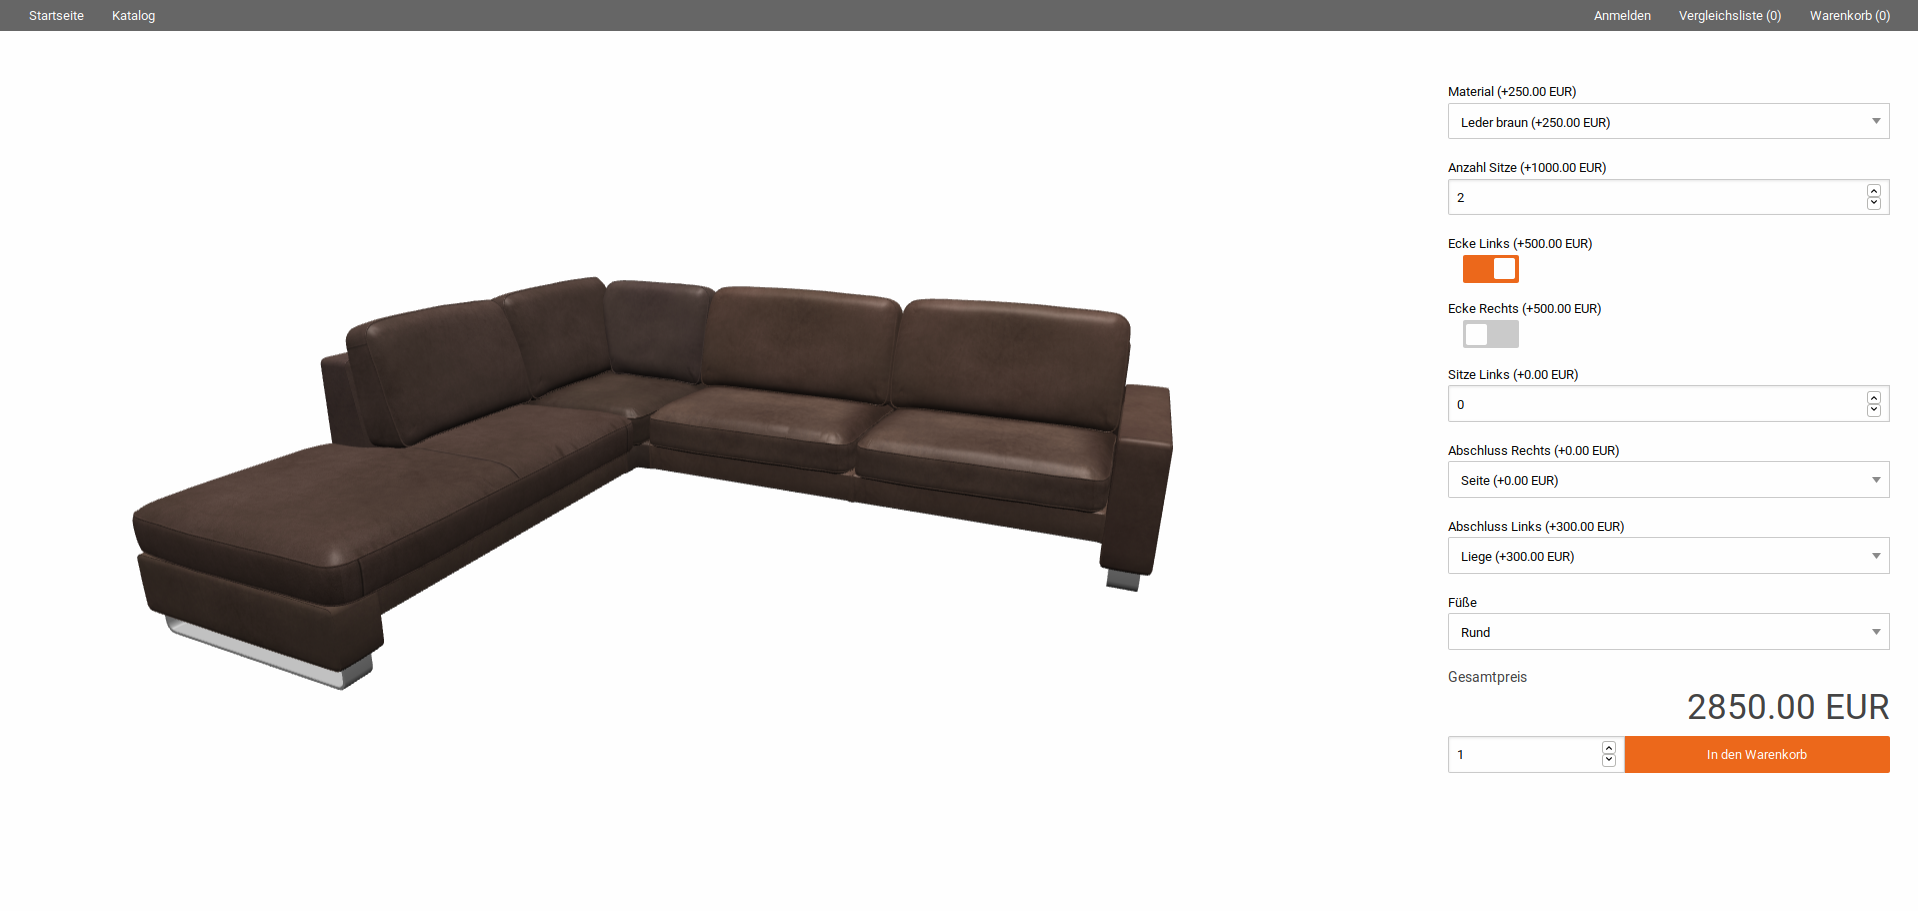 Implementation of the product configuration for the Lipari sofa considering element overview III